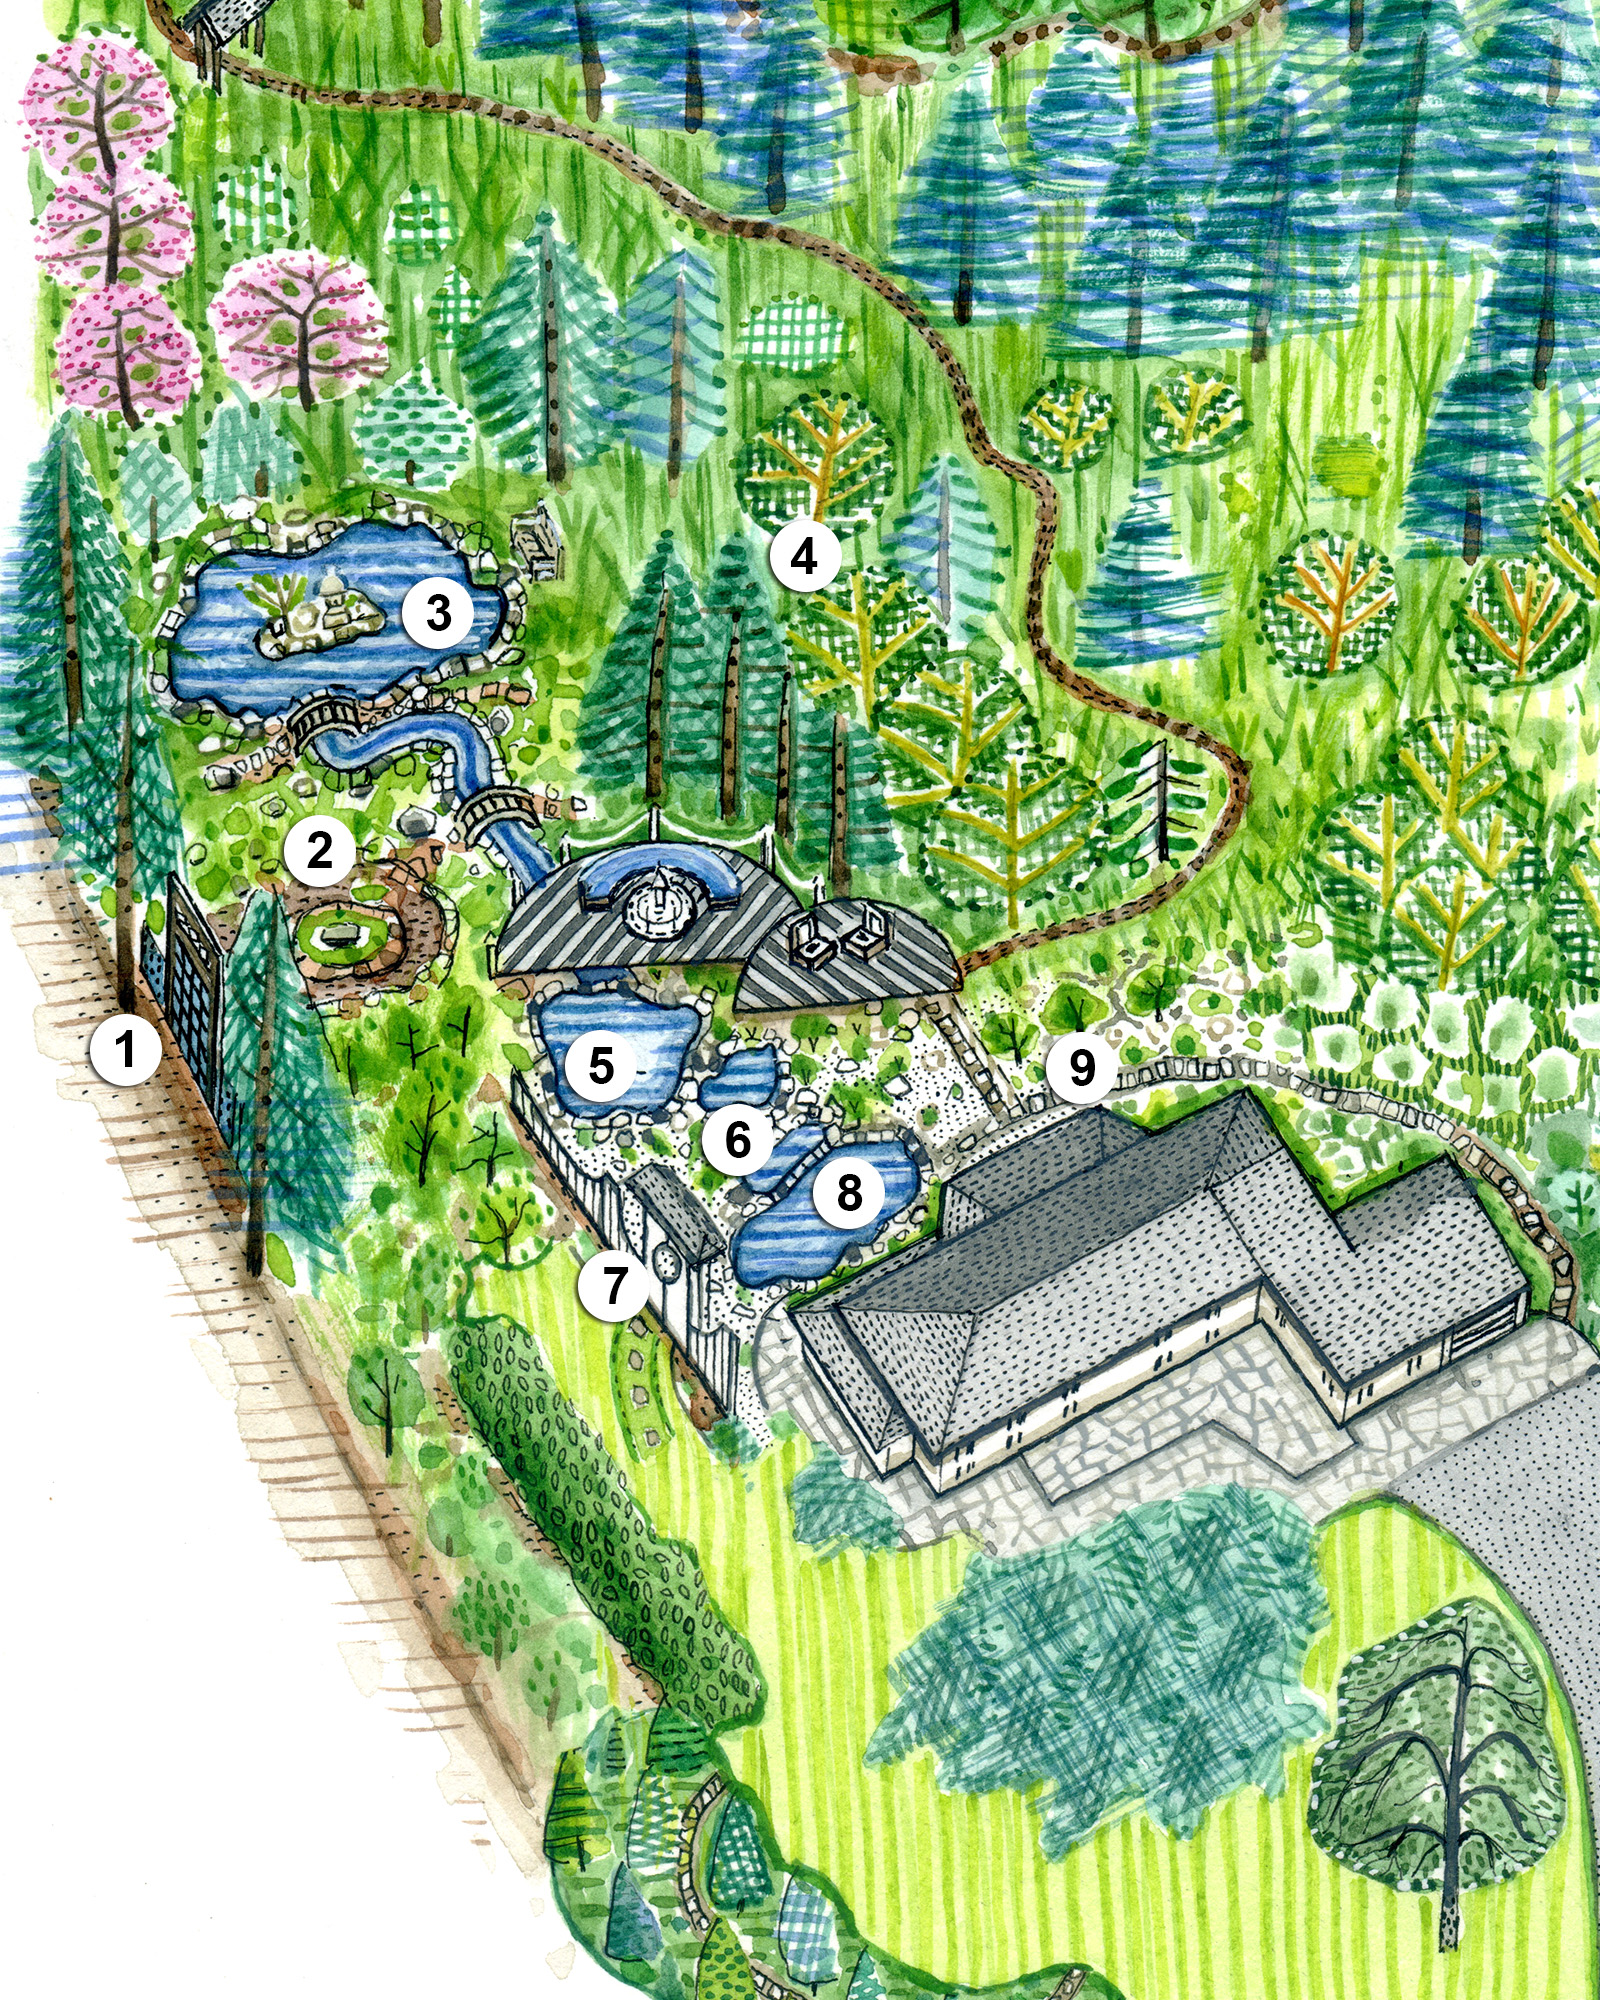 asian-style serenity garden illustration plan numbers